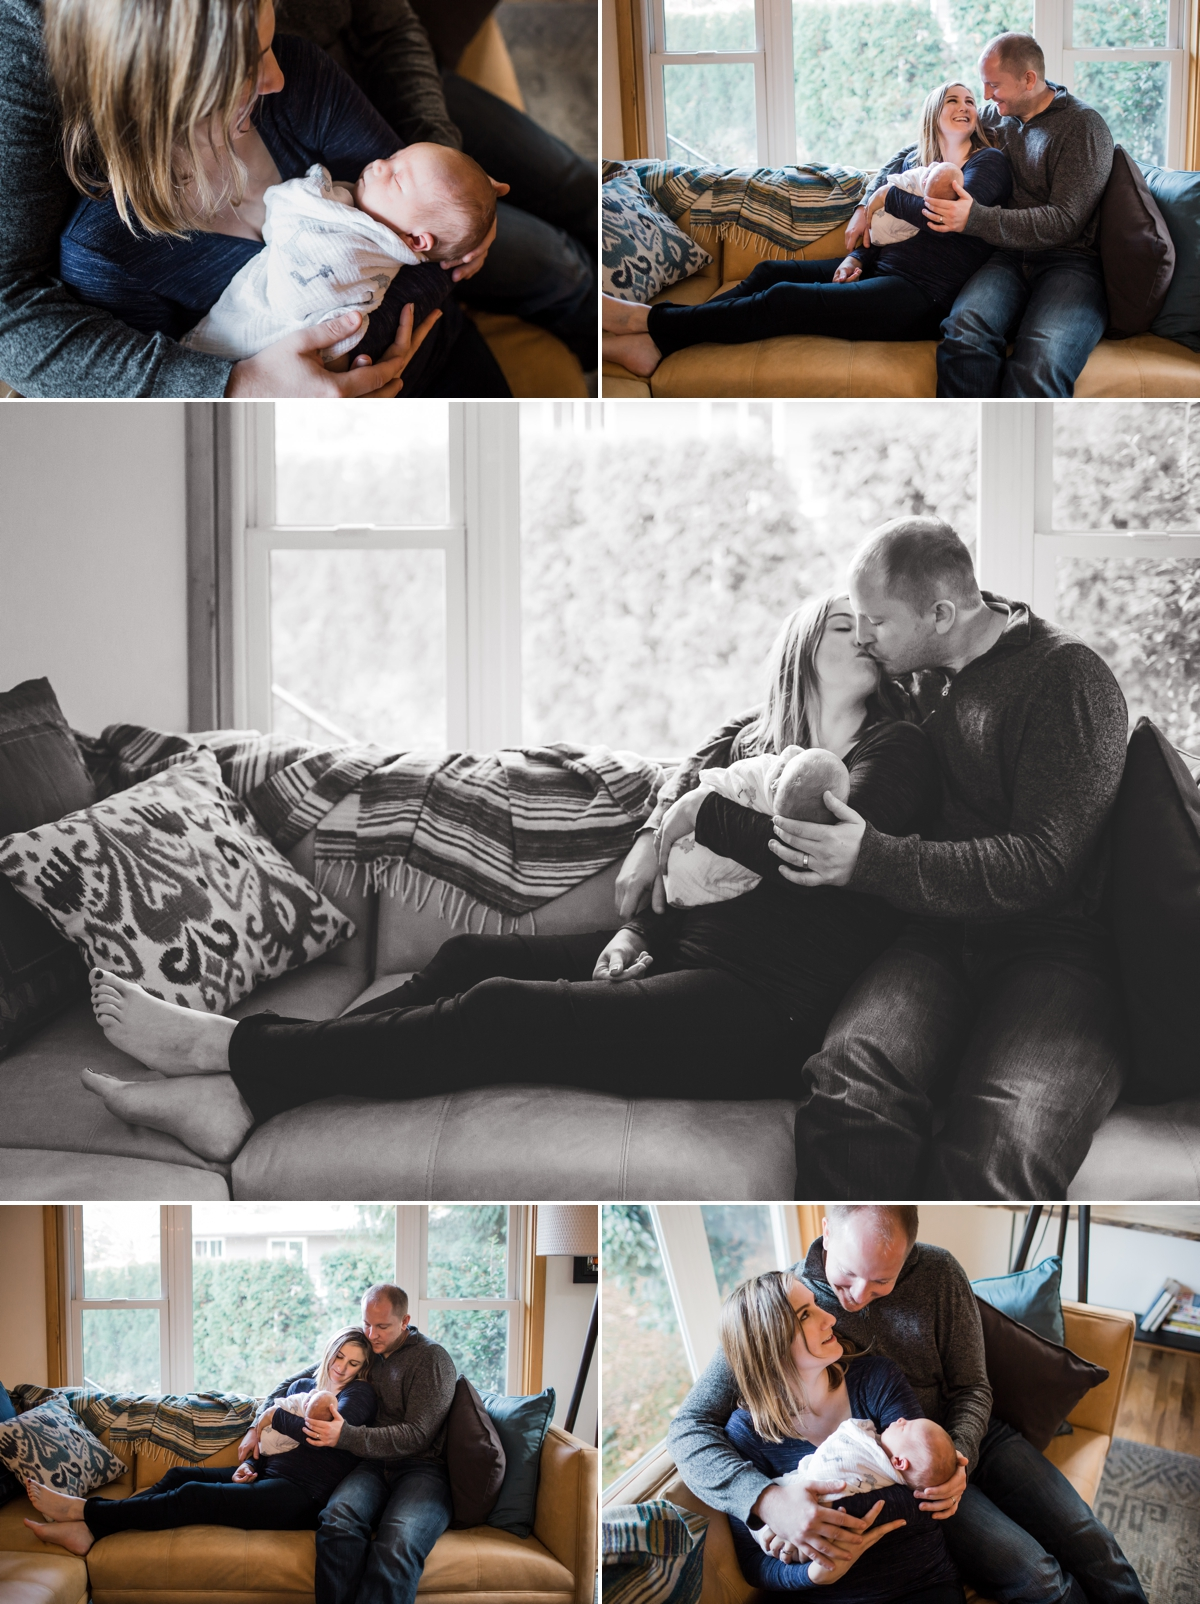 seattle newborn family lifestyle photographer | elena s blair photography | family at home with newborn baby boy oliver